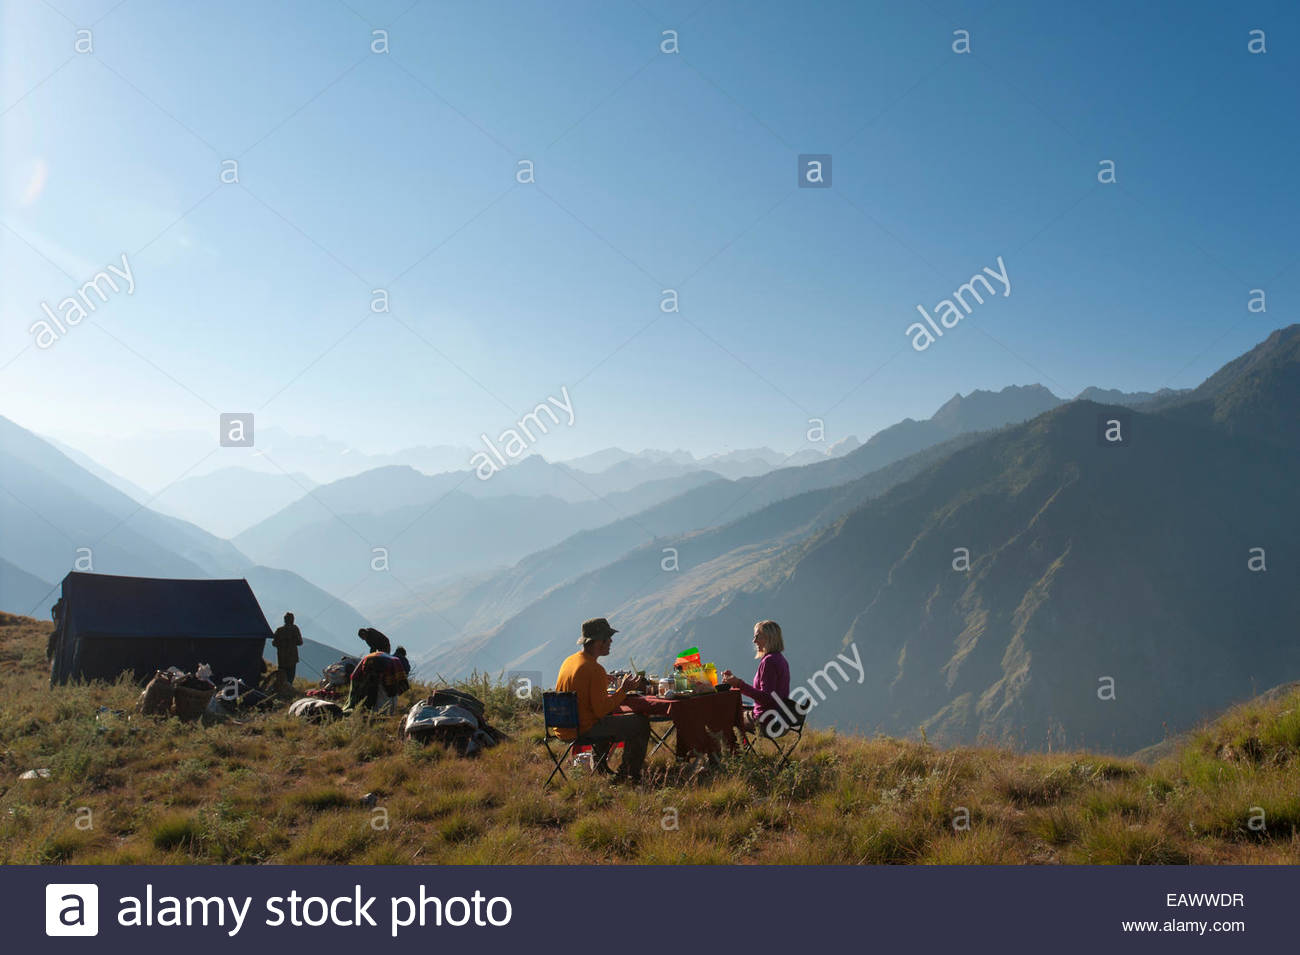 A couple eat breakfast on a secluded hillside in the Juphal valley while trekking in Dolpa, a remote region of Nepal - Stock Image